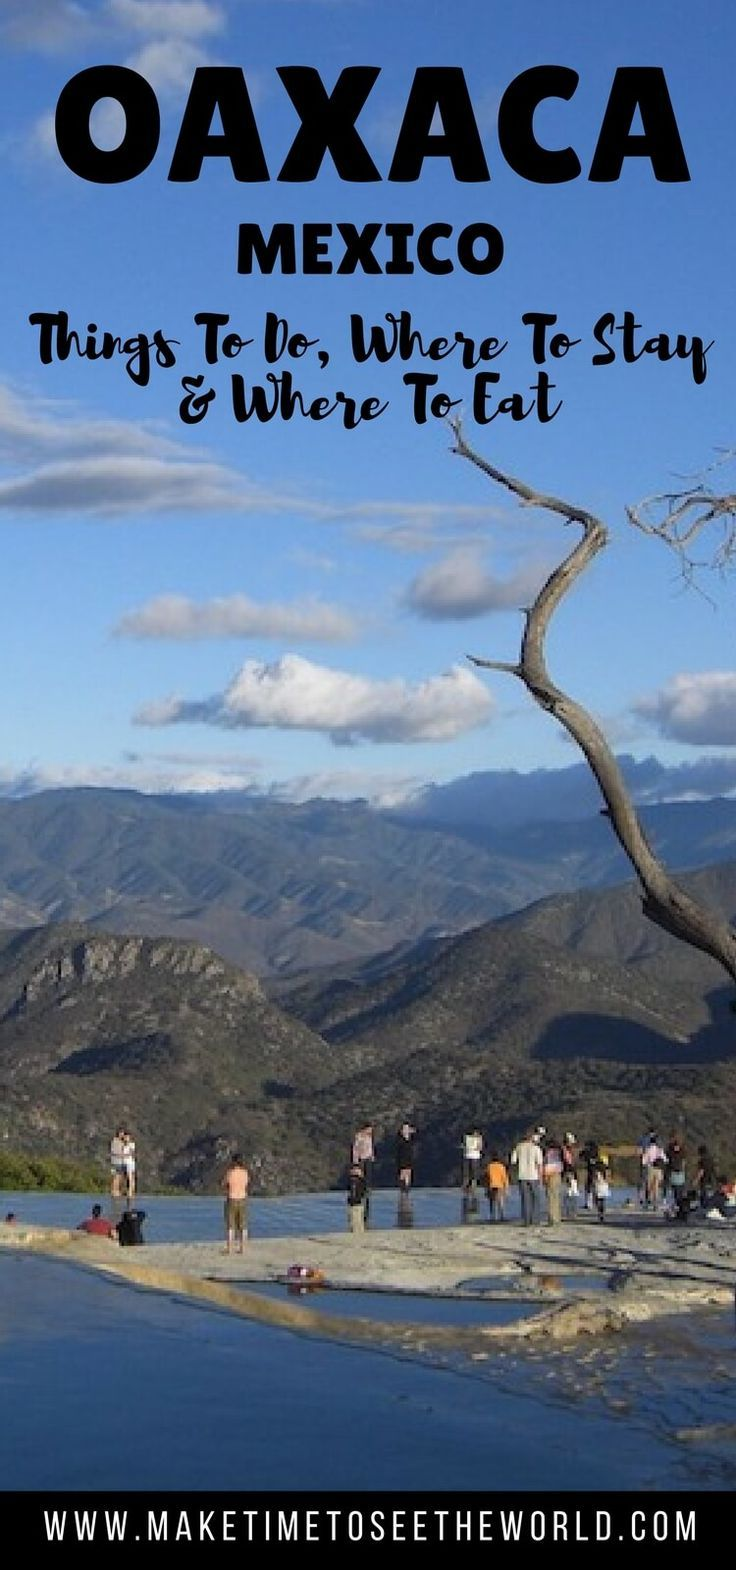 Planning a trip to Oaxaca? Click to read our guide to Oaxaca Turismo which includes the Incredible Things To Do in Oaxaca, Where to Stay & Where to Eat! *********************************************************************************** Oaxaca Mexico | Oa